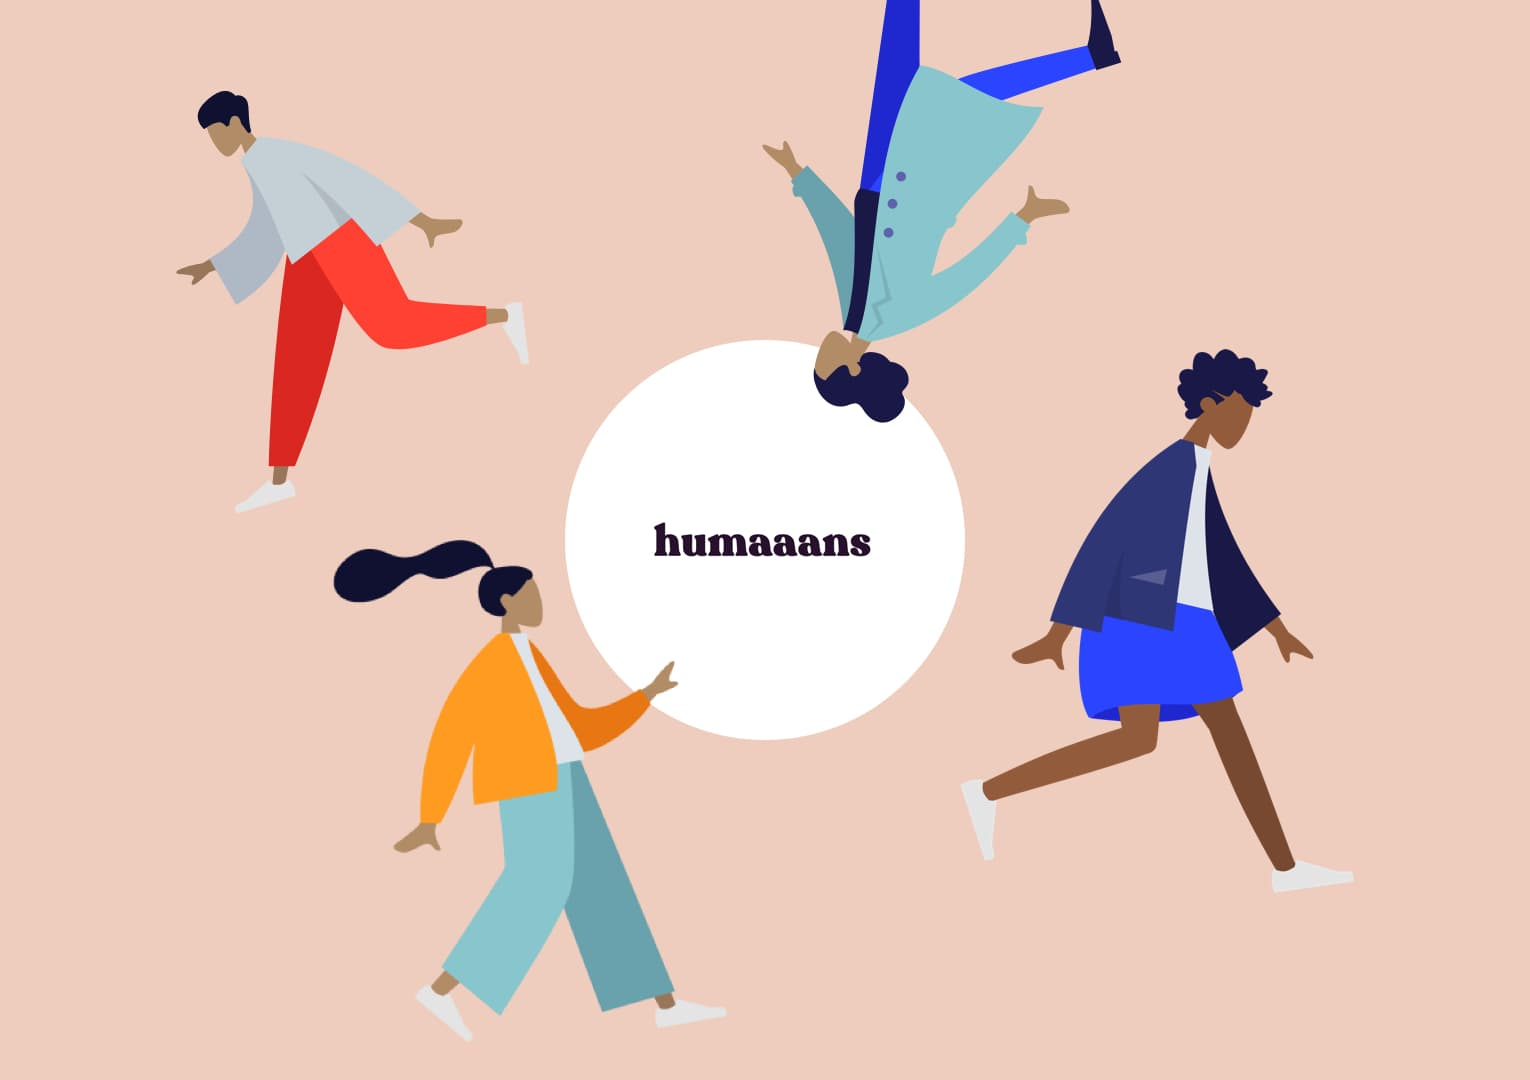 Humaaans by